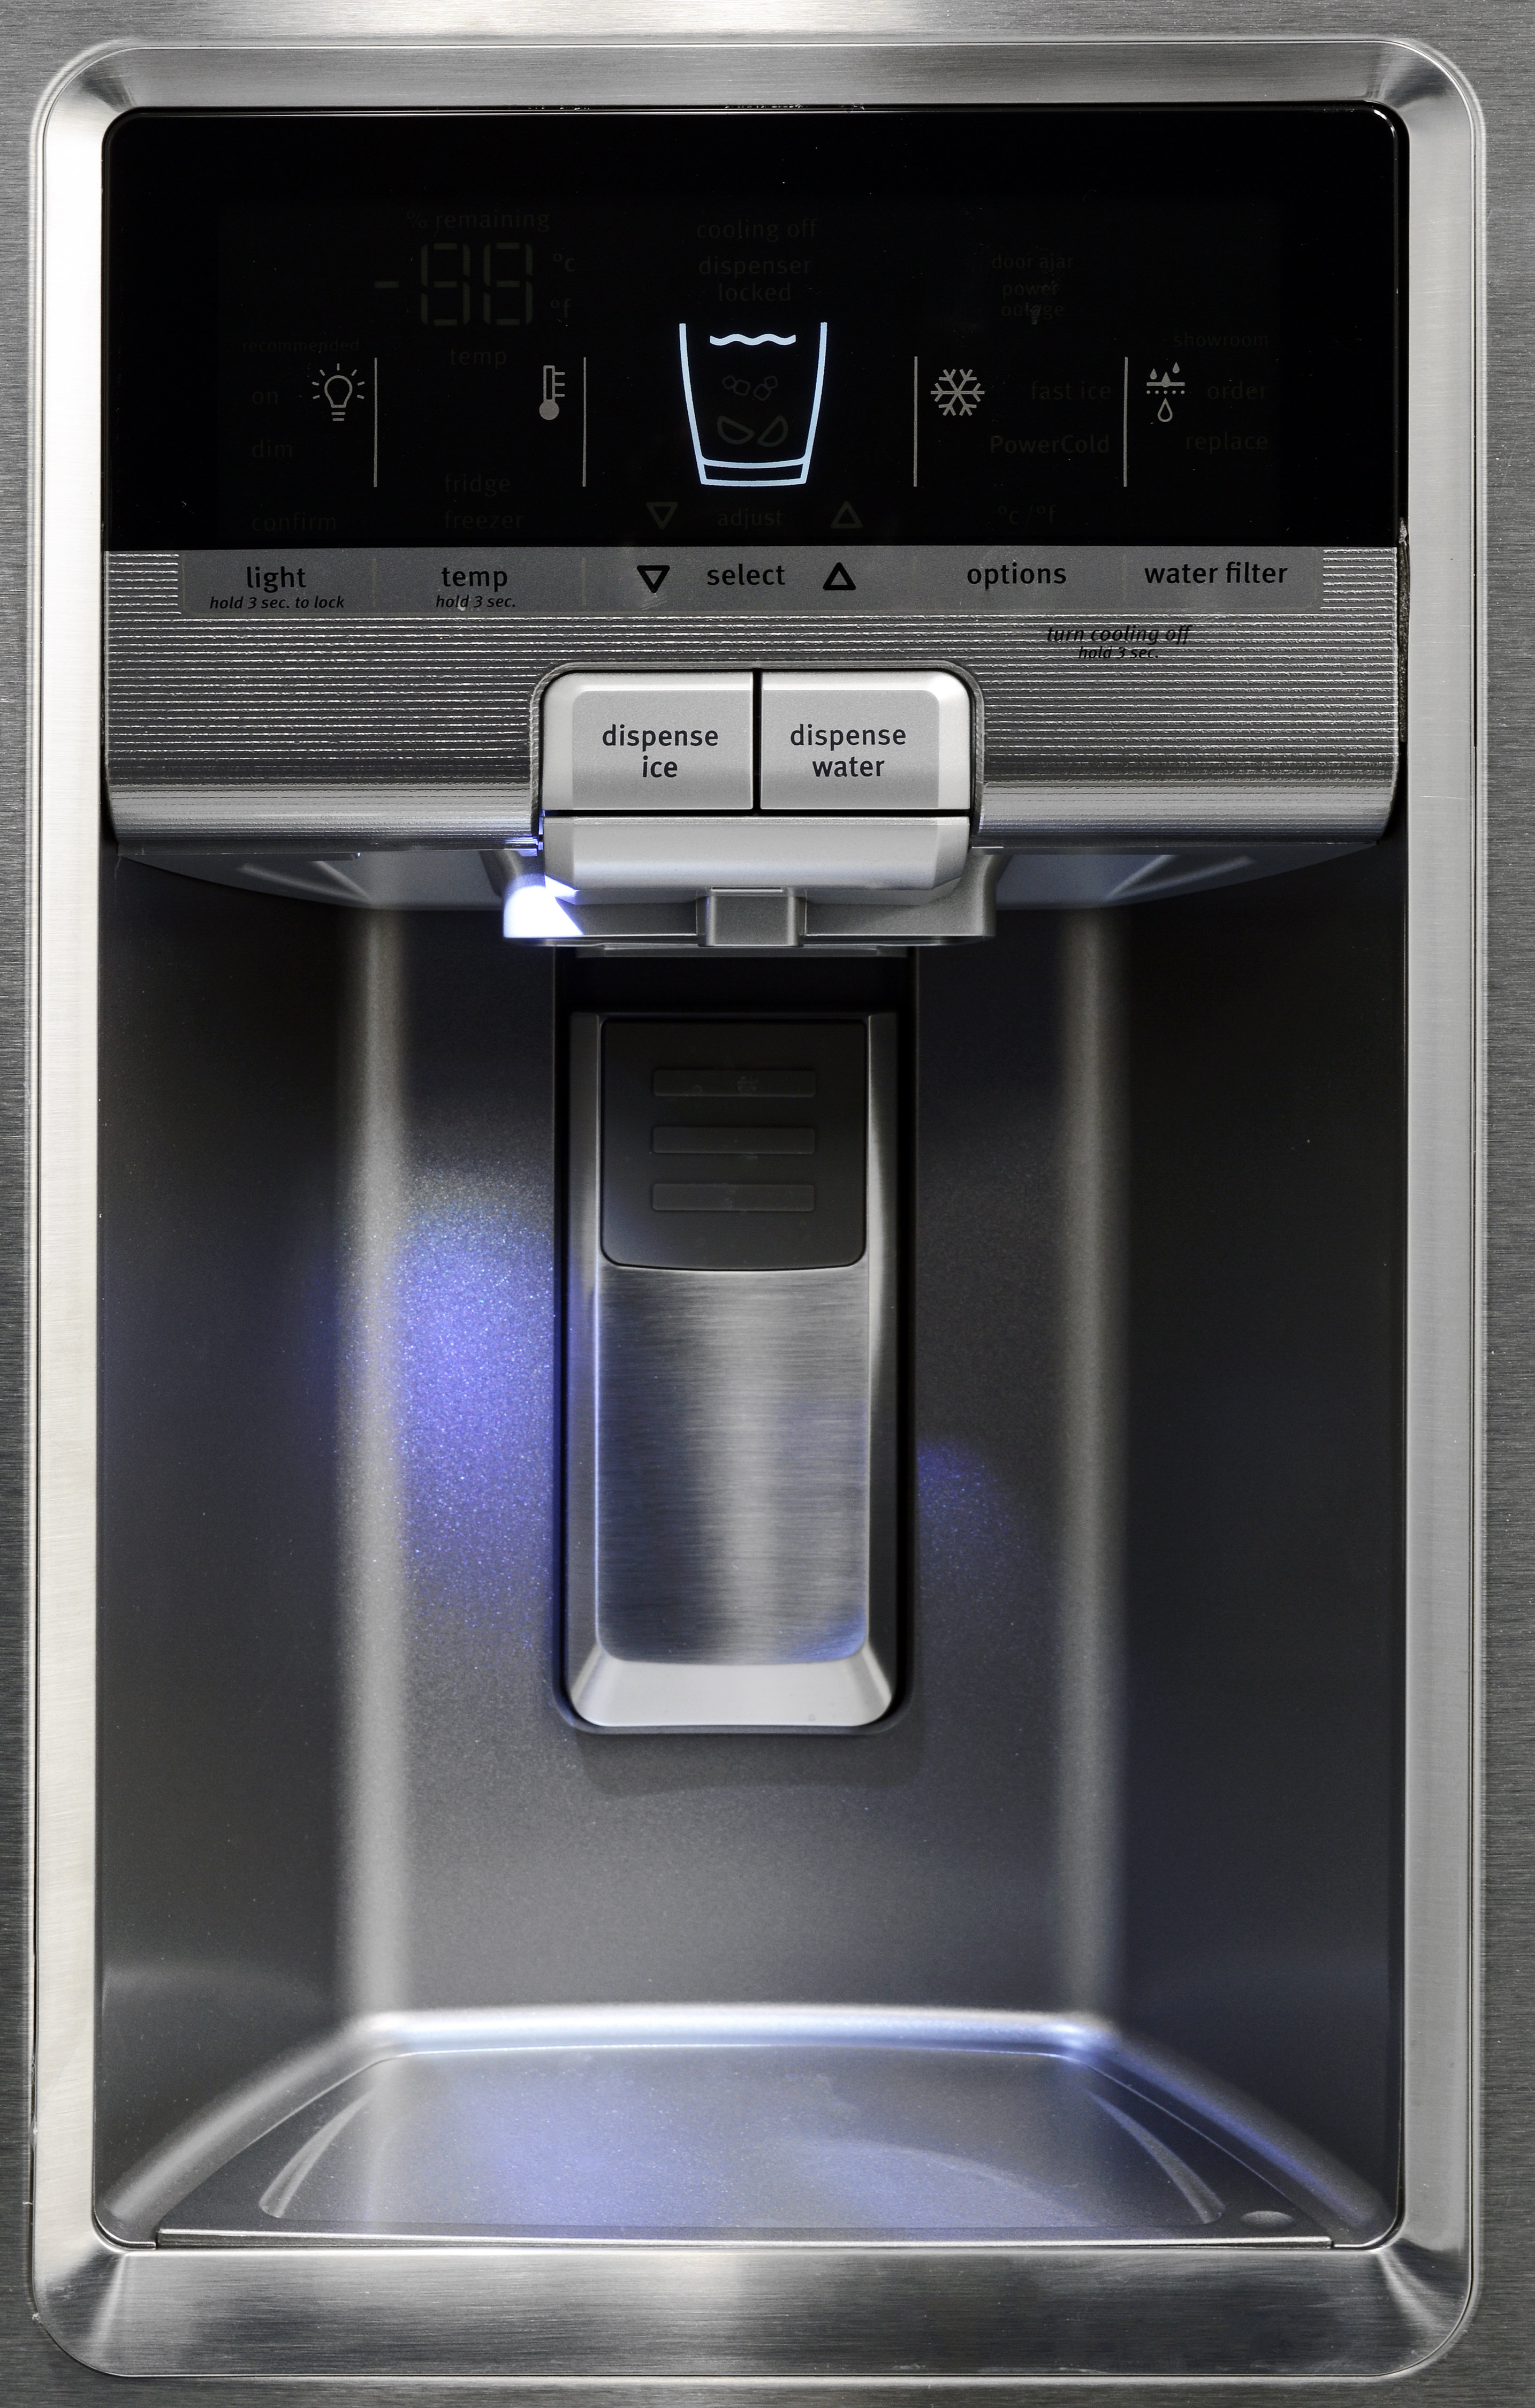 The Maytag MFX2876DRM's tall dispenser can easily accommodate an average drinking glass.